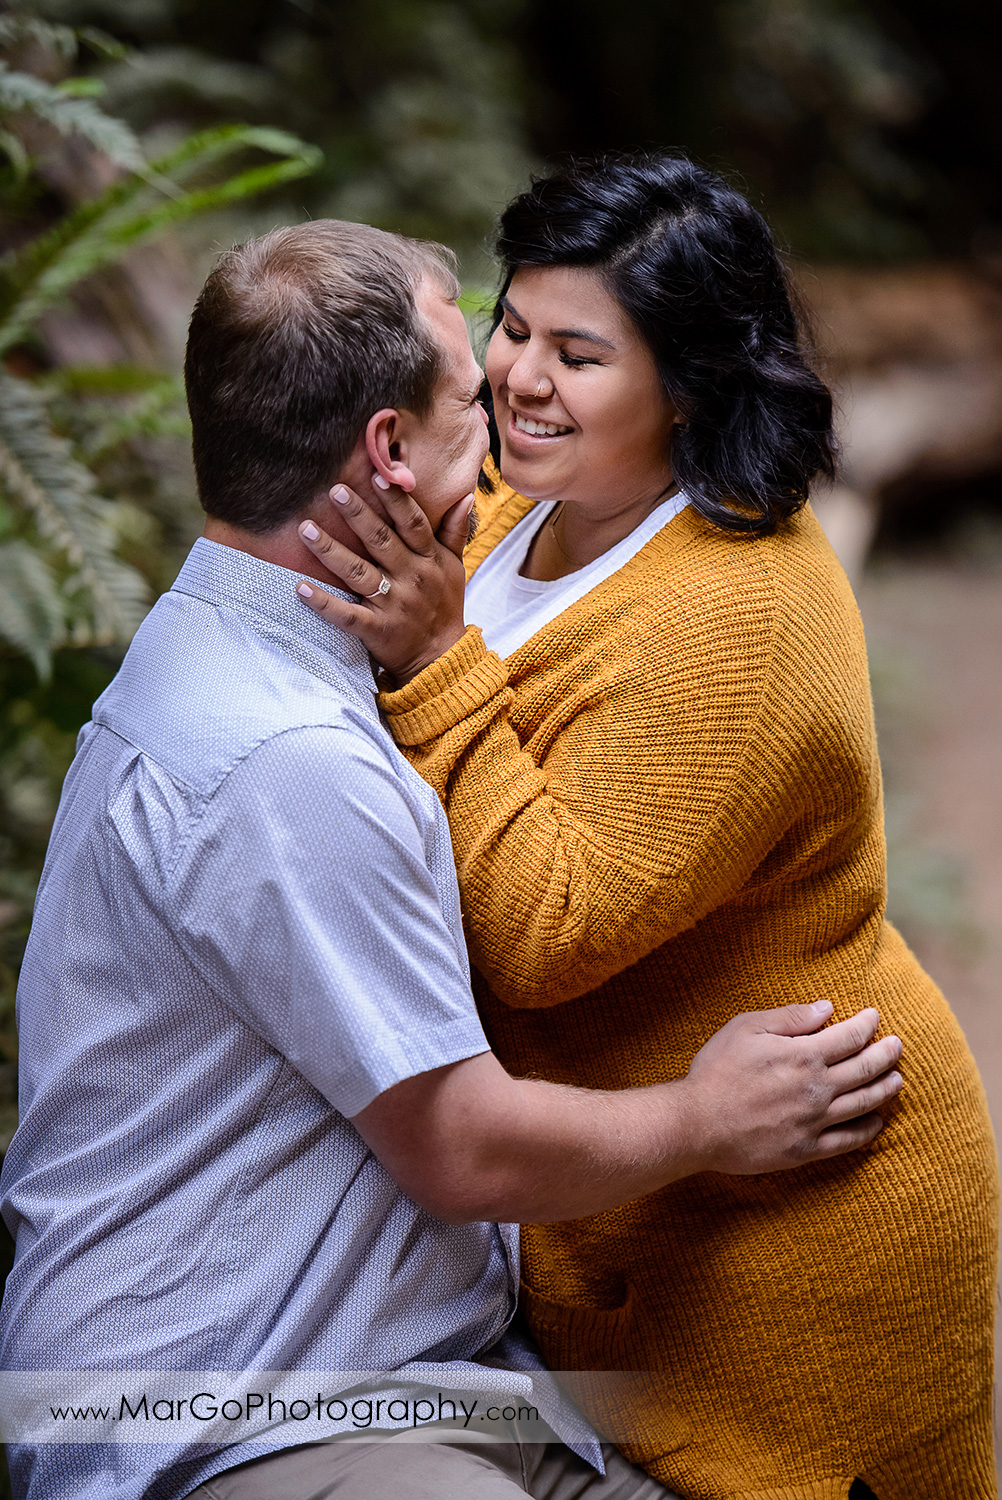 engaged couple kissing at Muir Woods National Monument